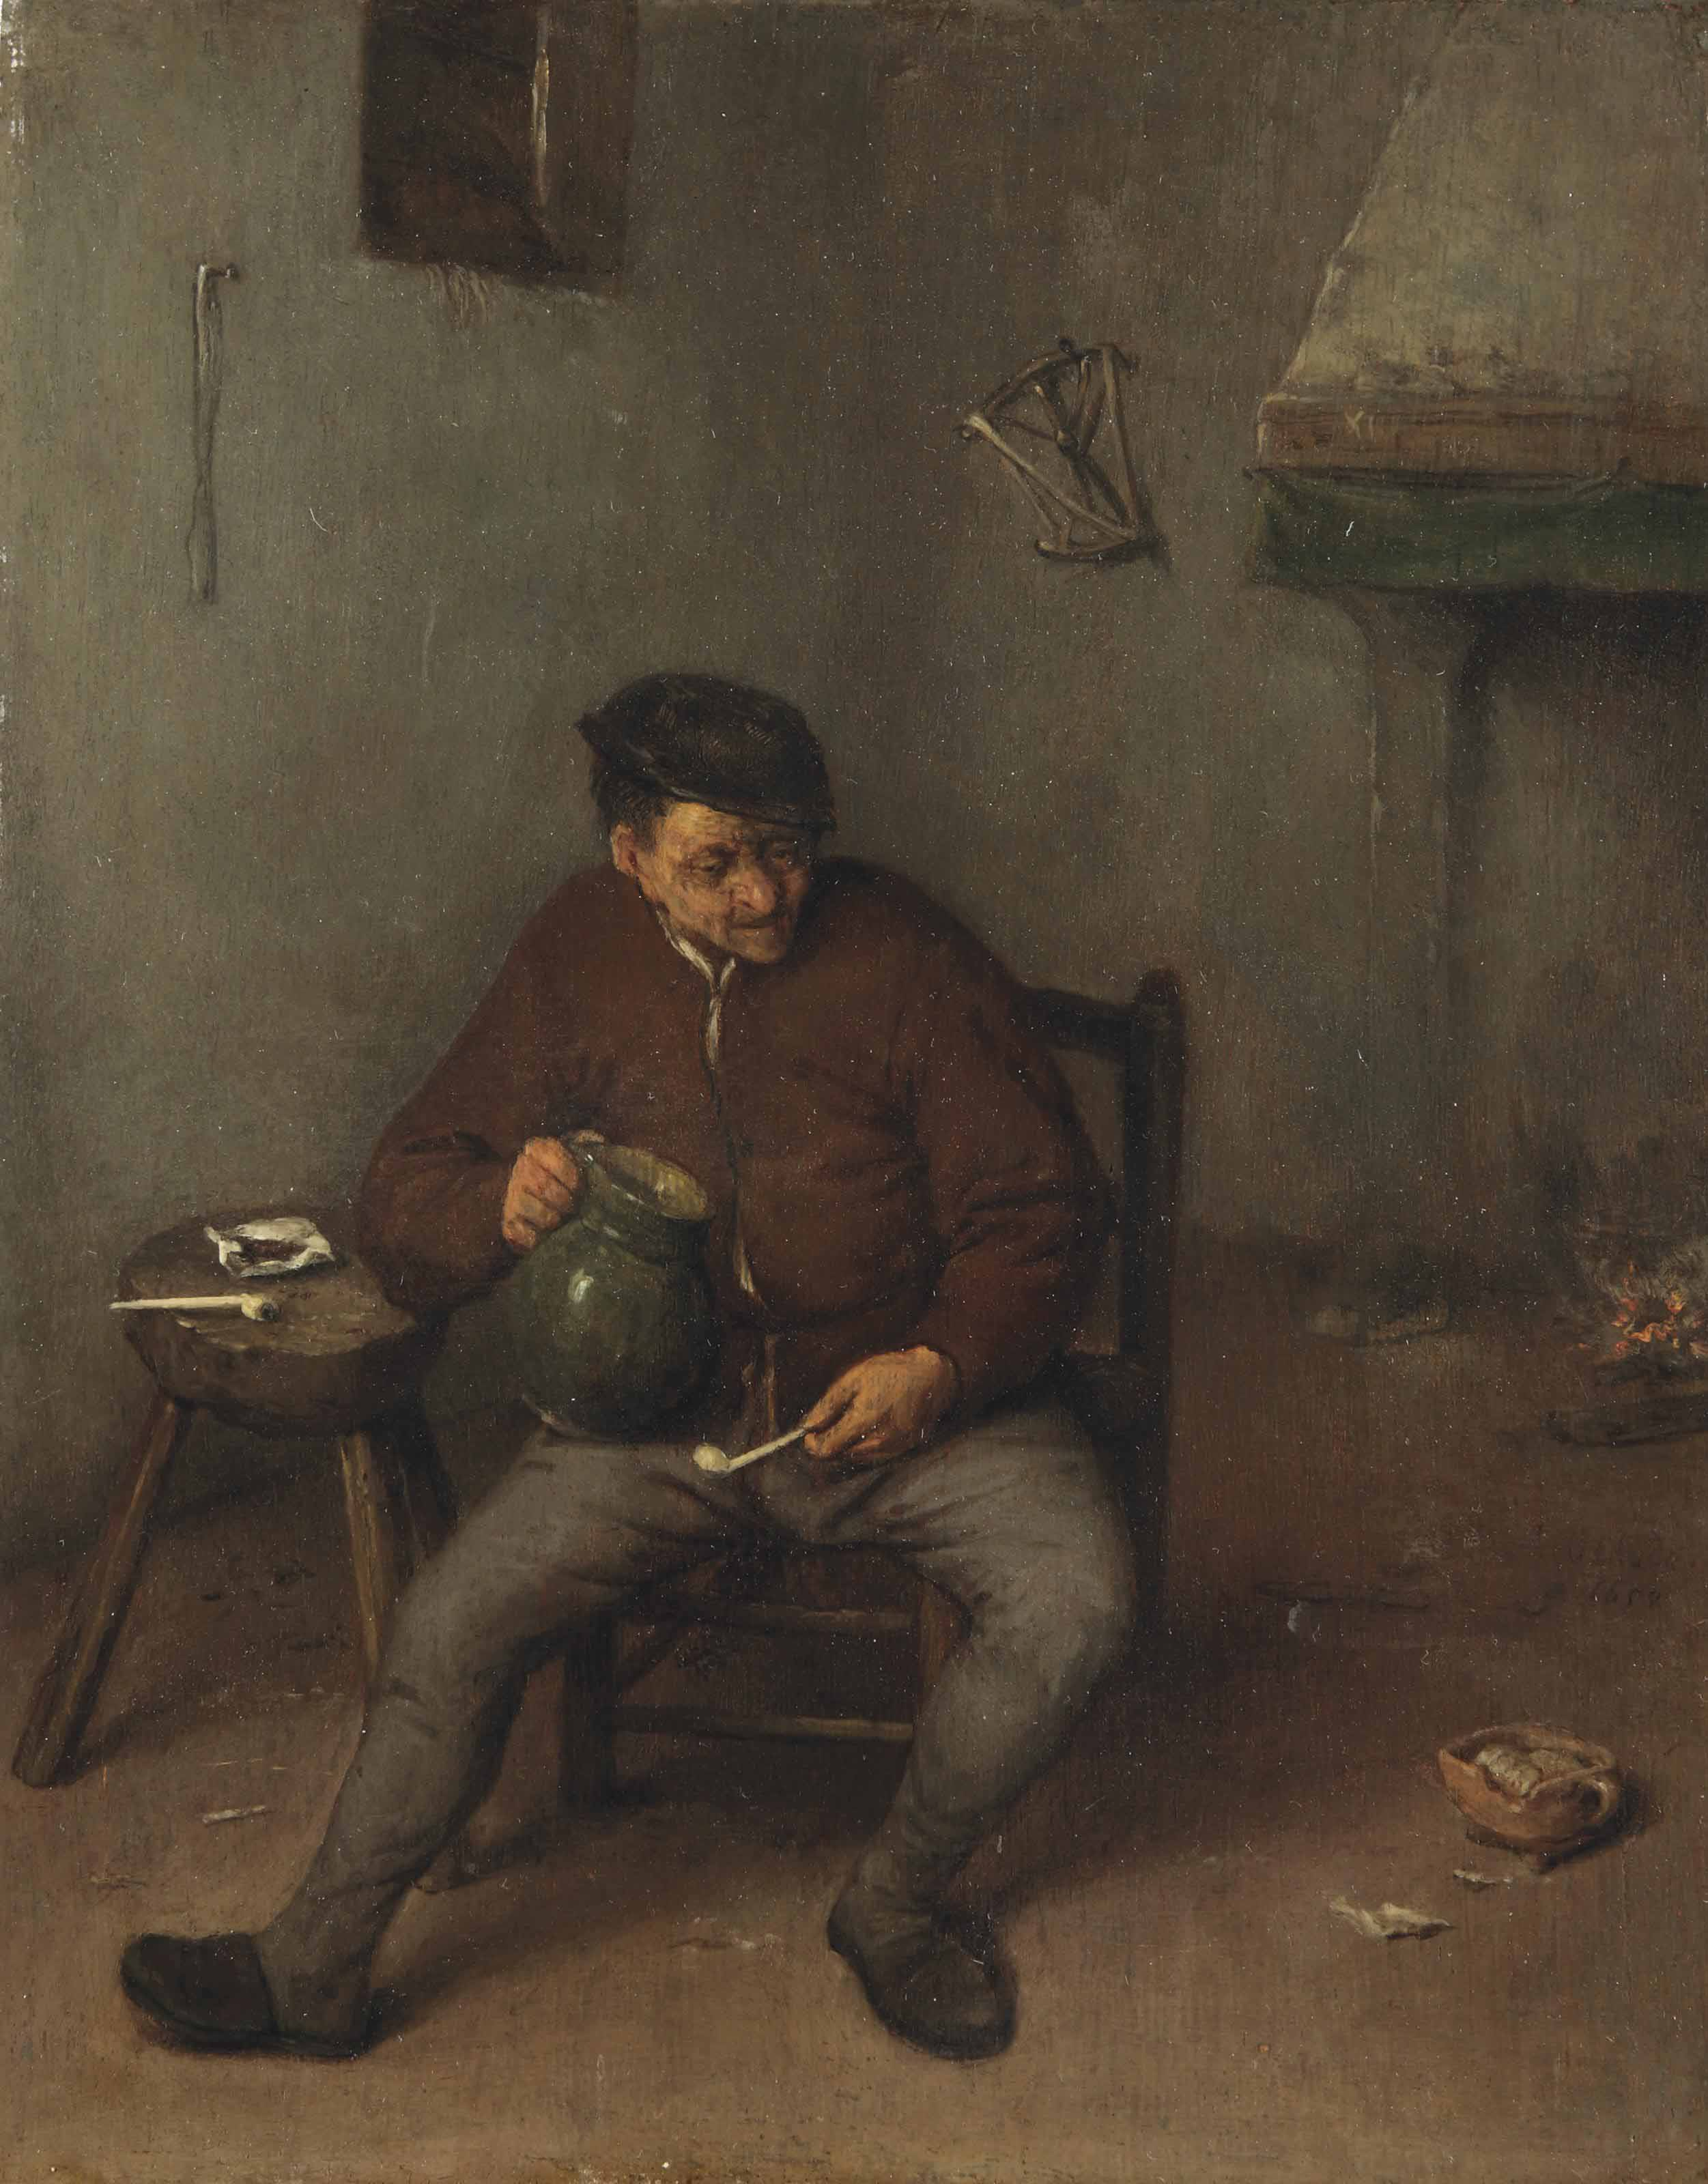 A peasant smoking a pipe in an interior